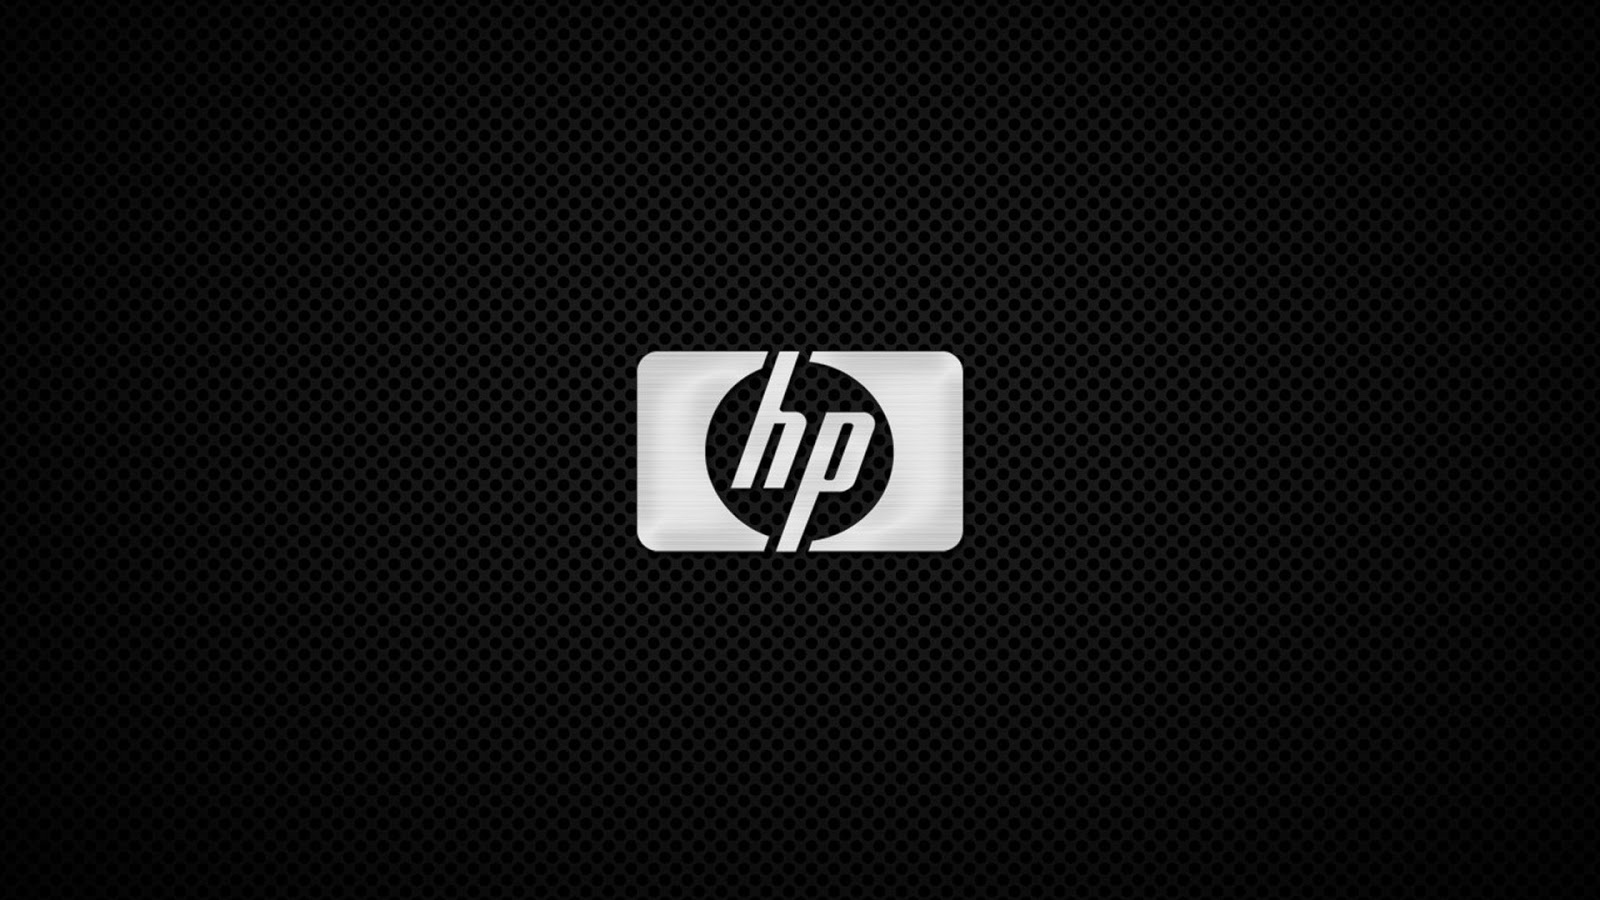 Hp Hd Wallpapers: Latest HD Wallpapers